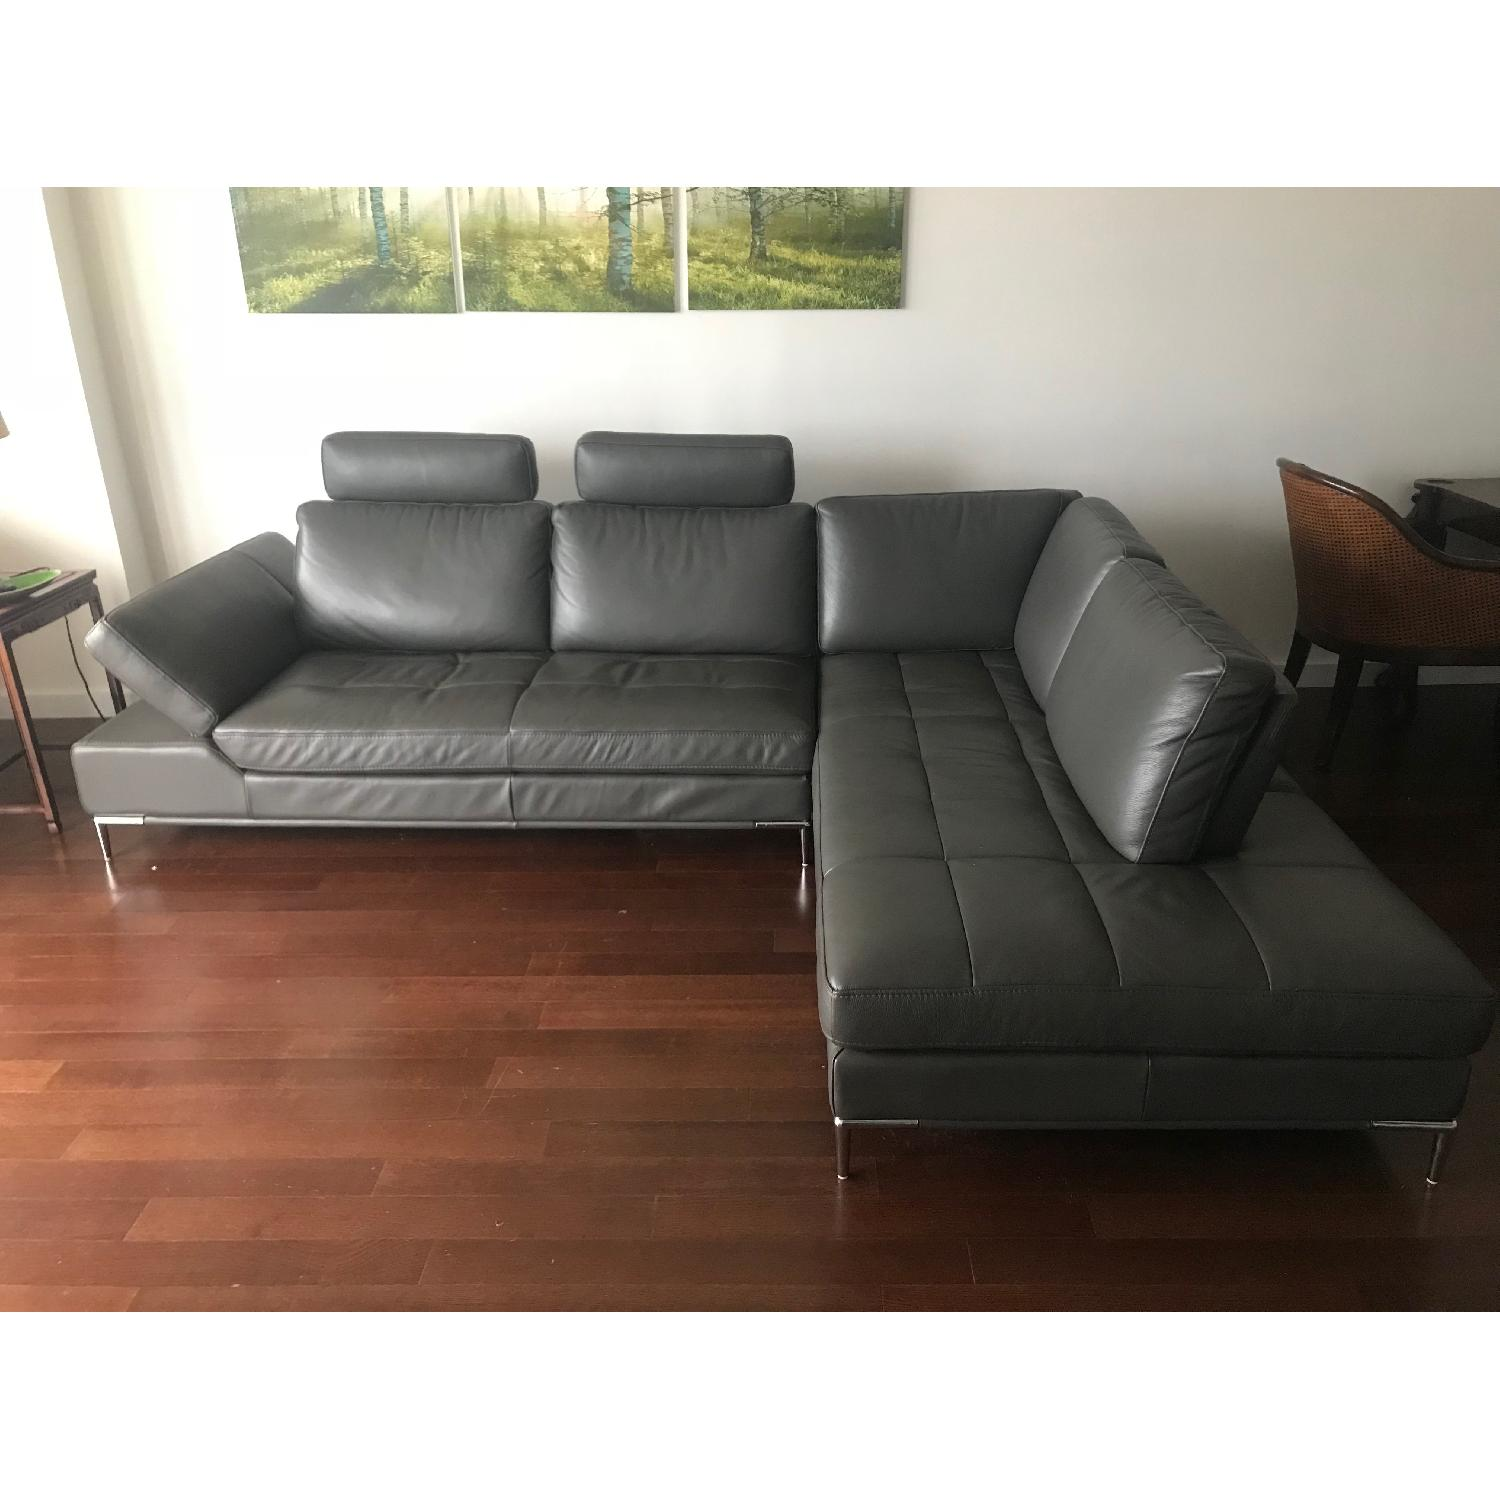 gray to sunset istikbal by chain category sec sectional vision hover zoom sofa page id diego index name product